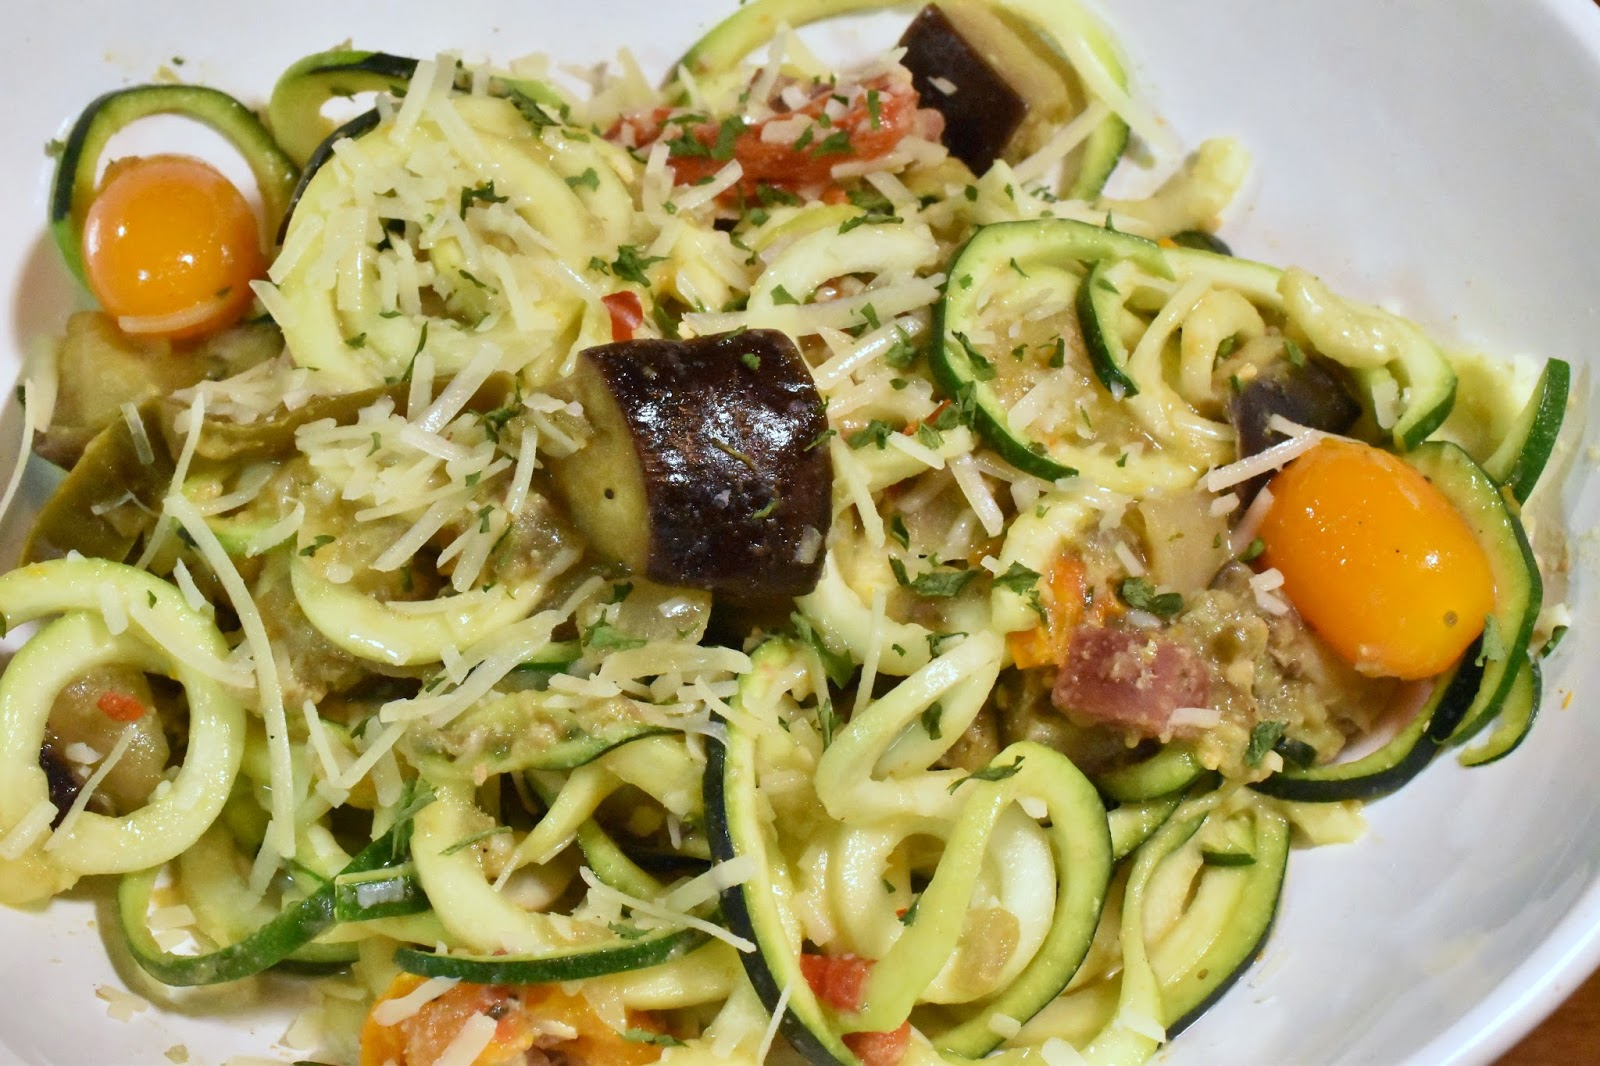 Creamy Eggplant and Tomato Zoodles. Photo by Greg Hudson.